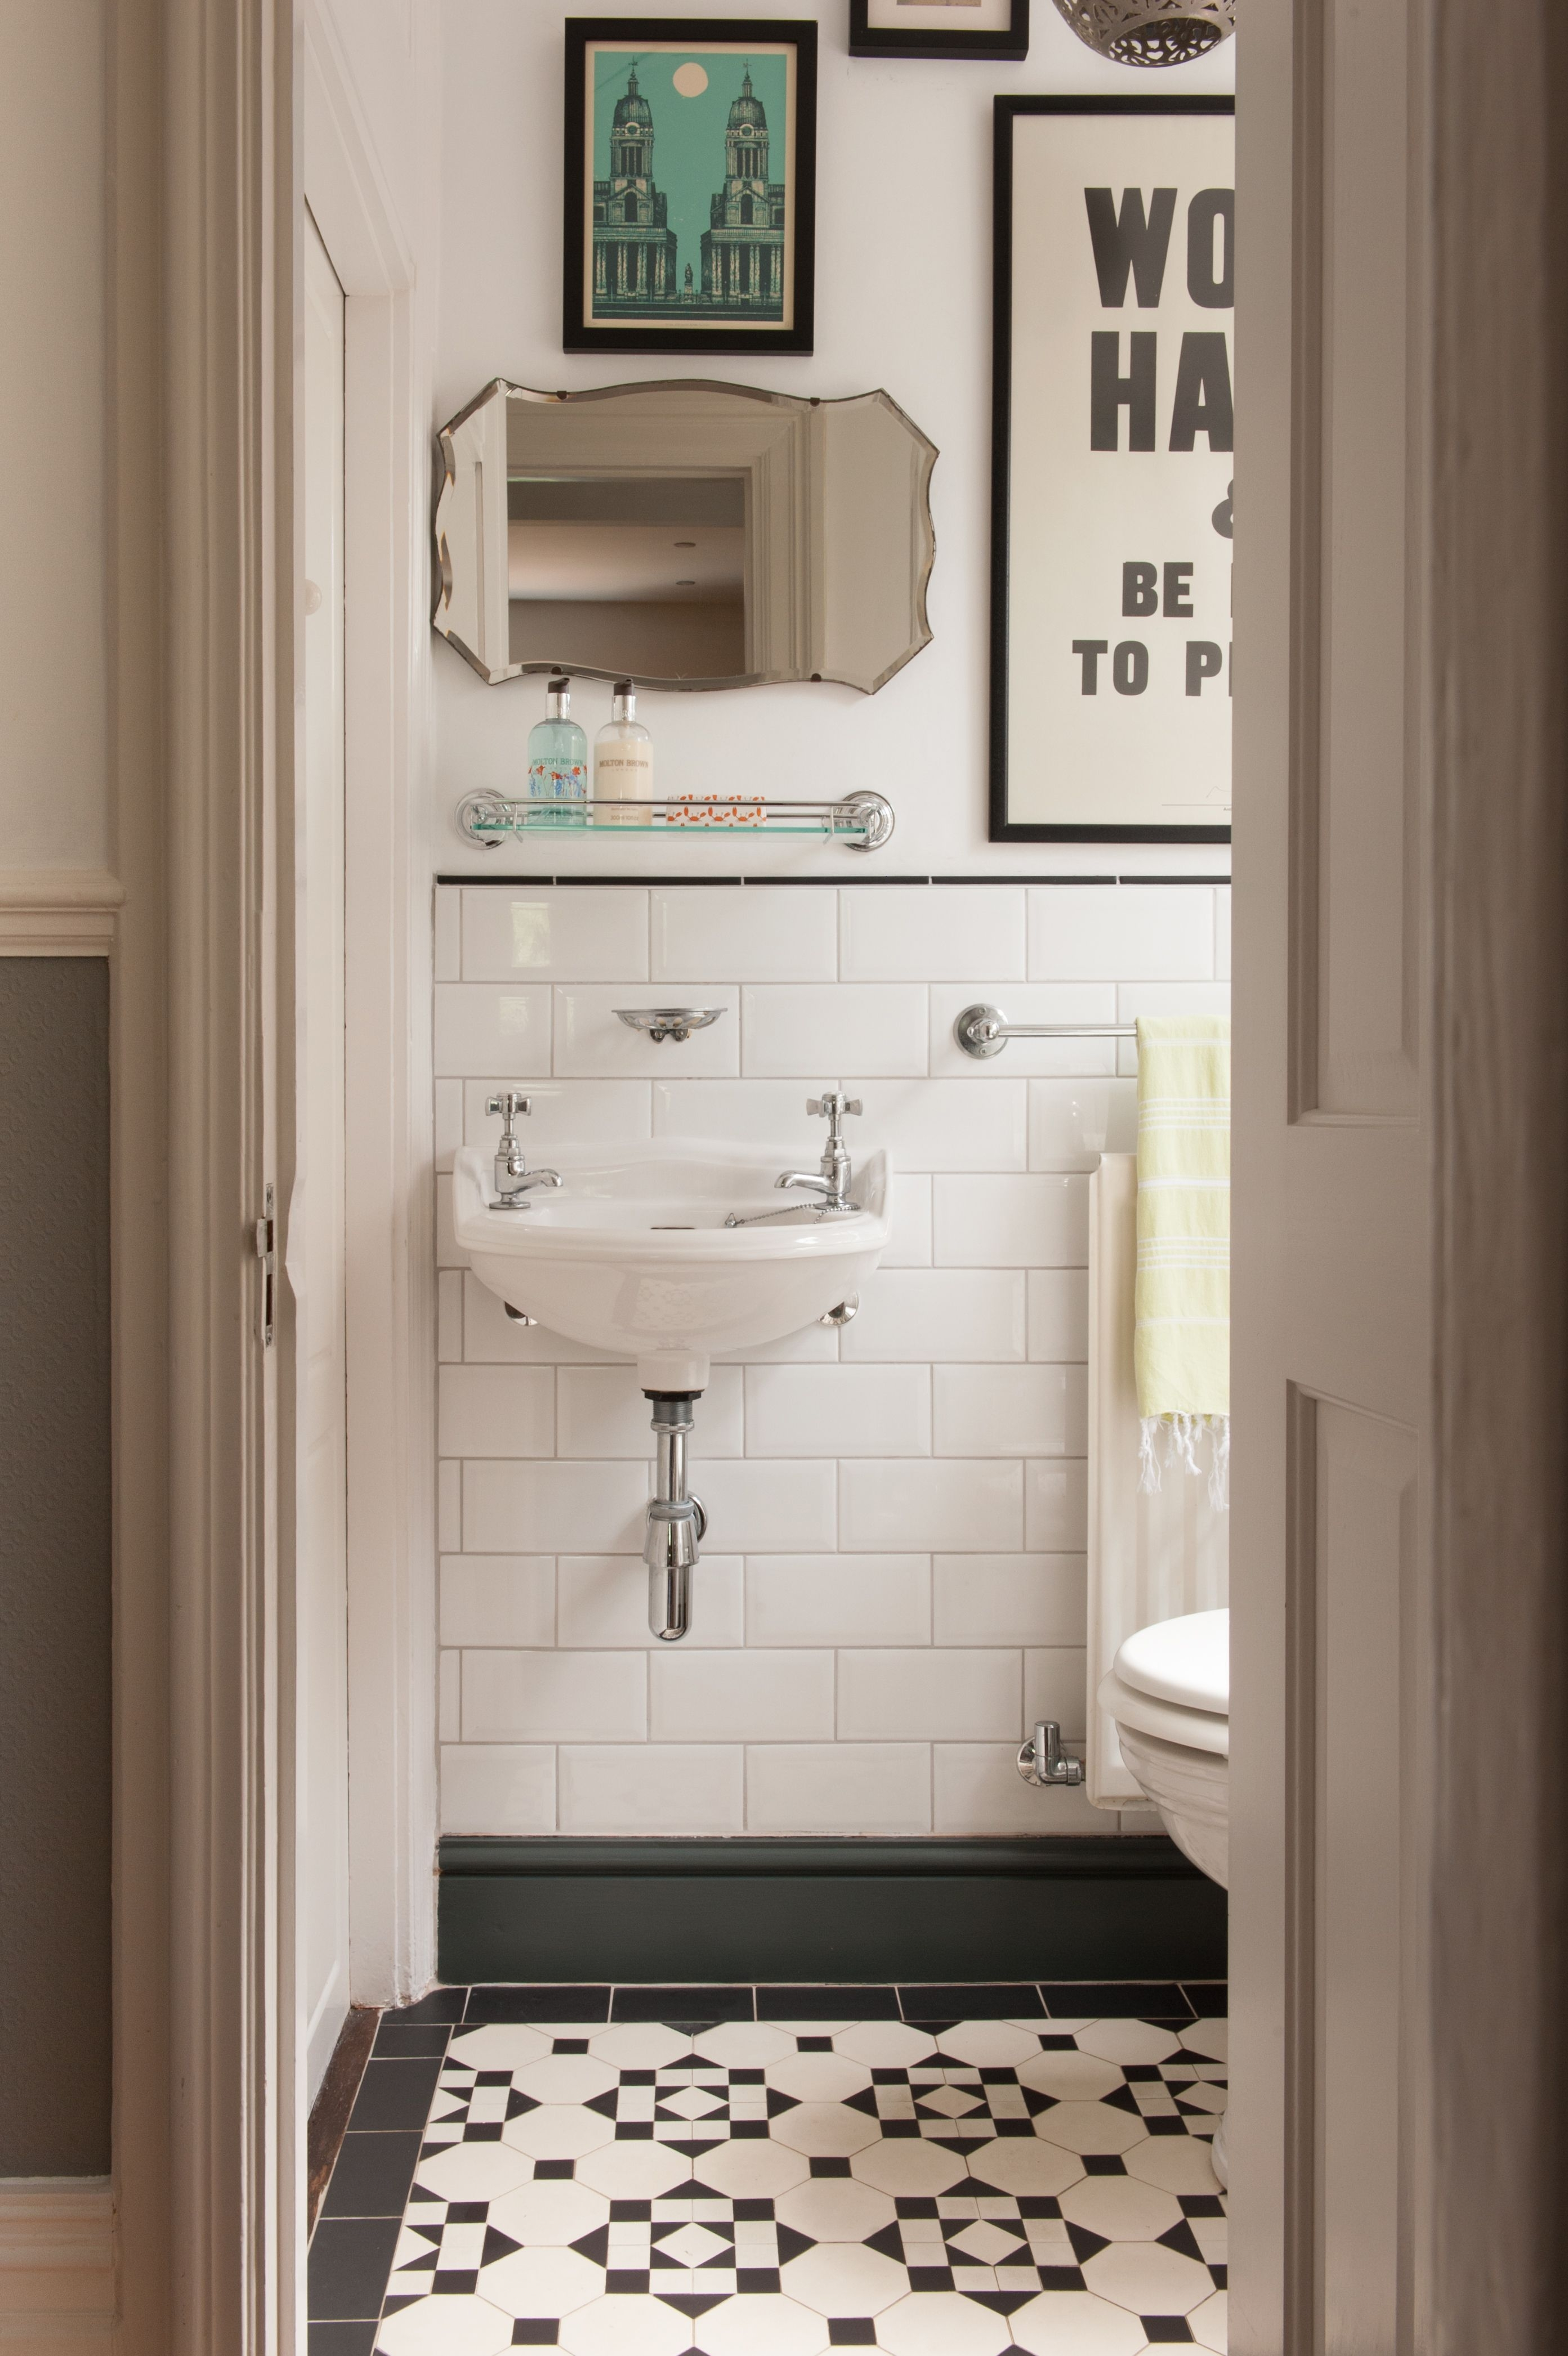 vintage style bathroom with black and white floor tile